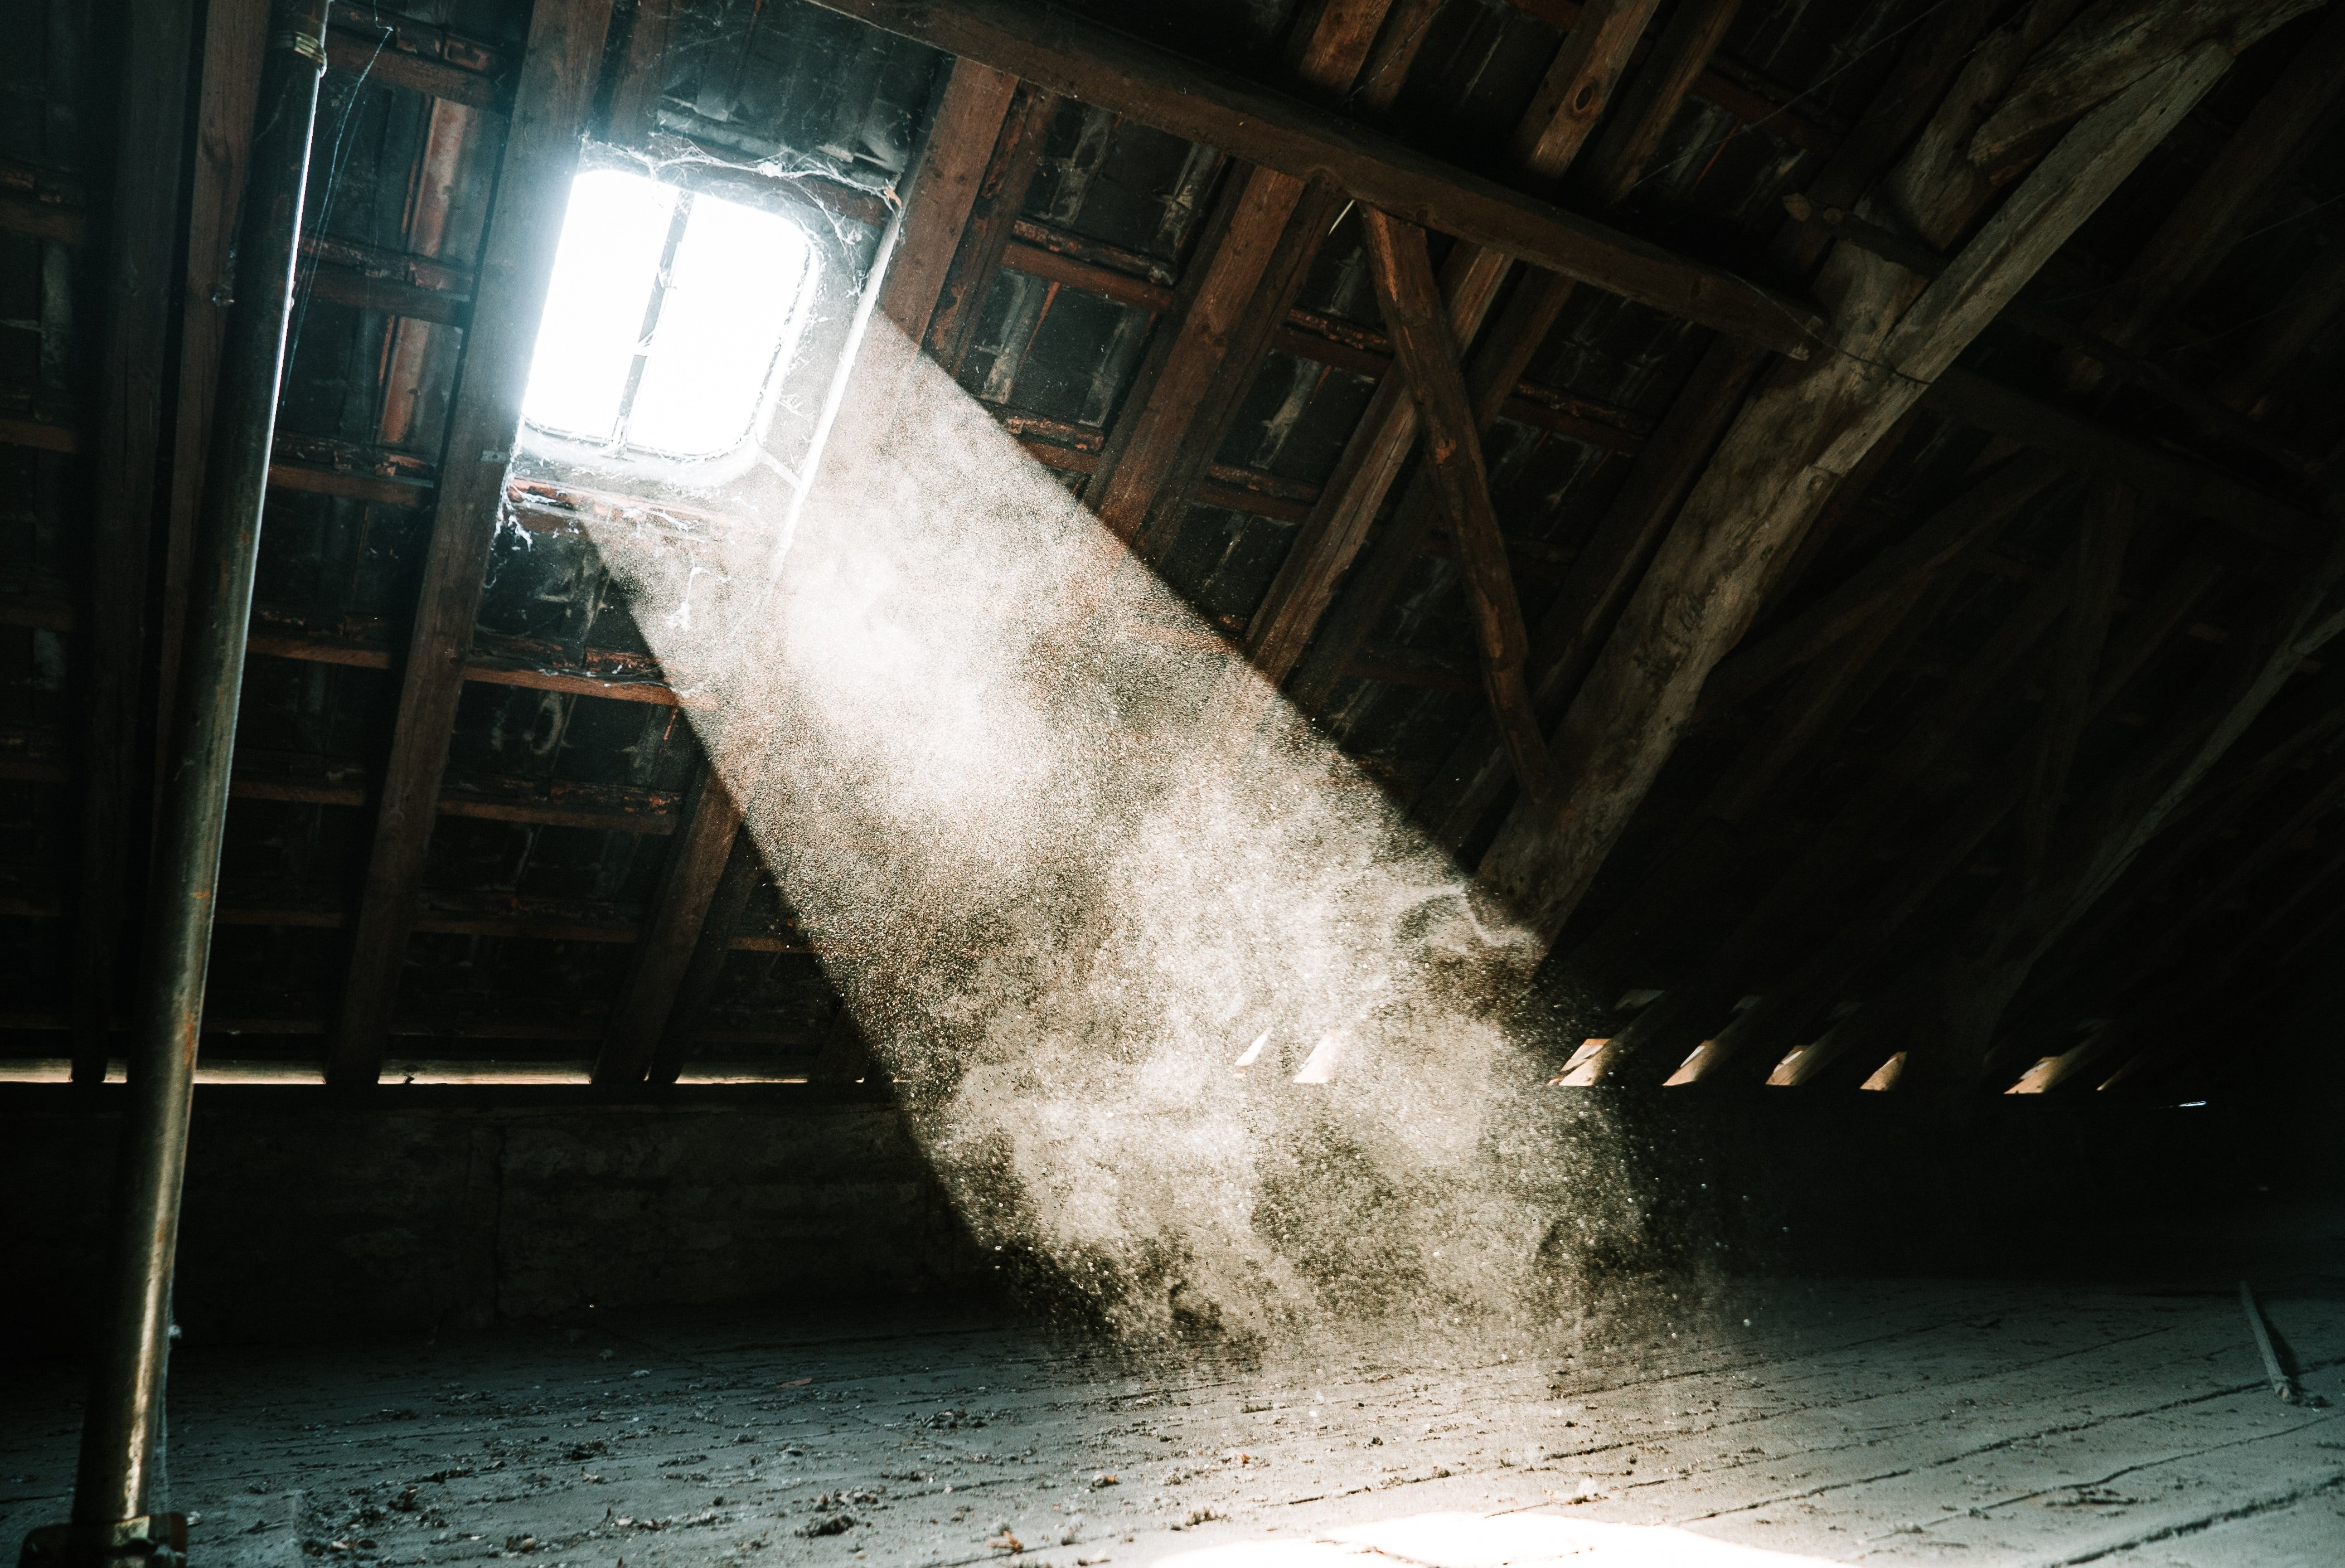 Light shining in to an attic | Photo by Mika Baumeister on Unsplash